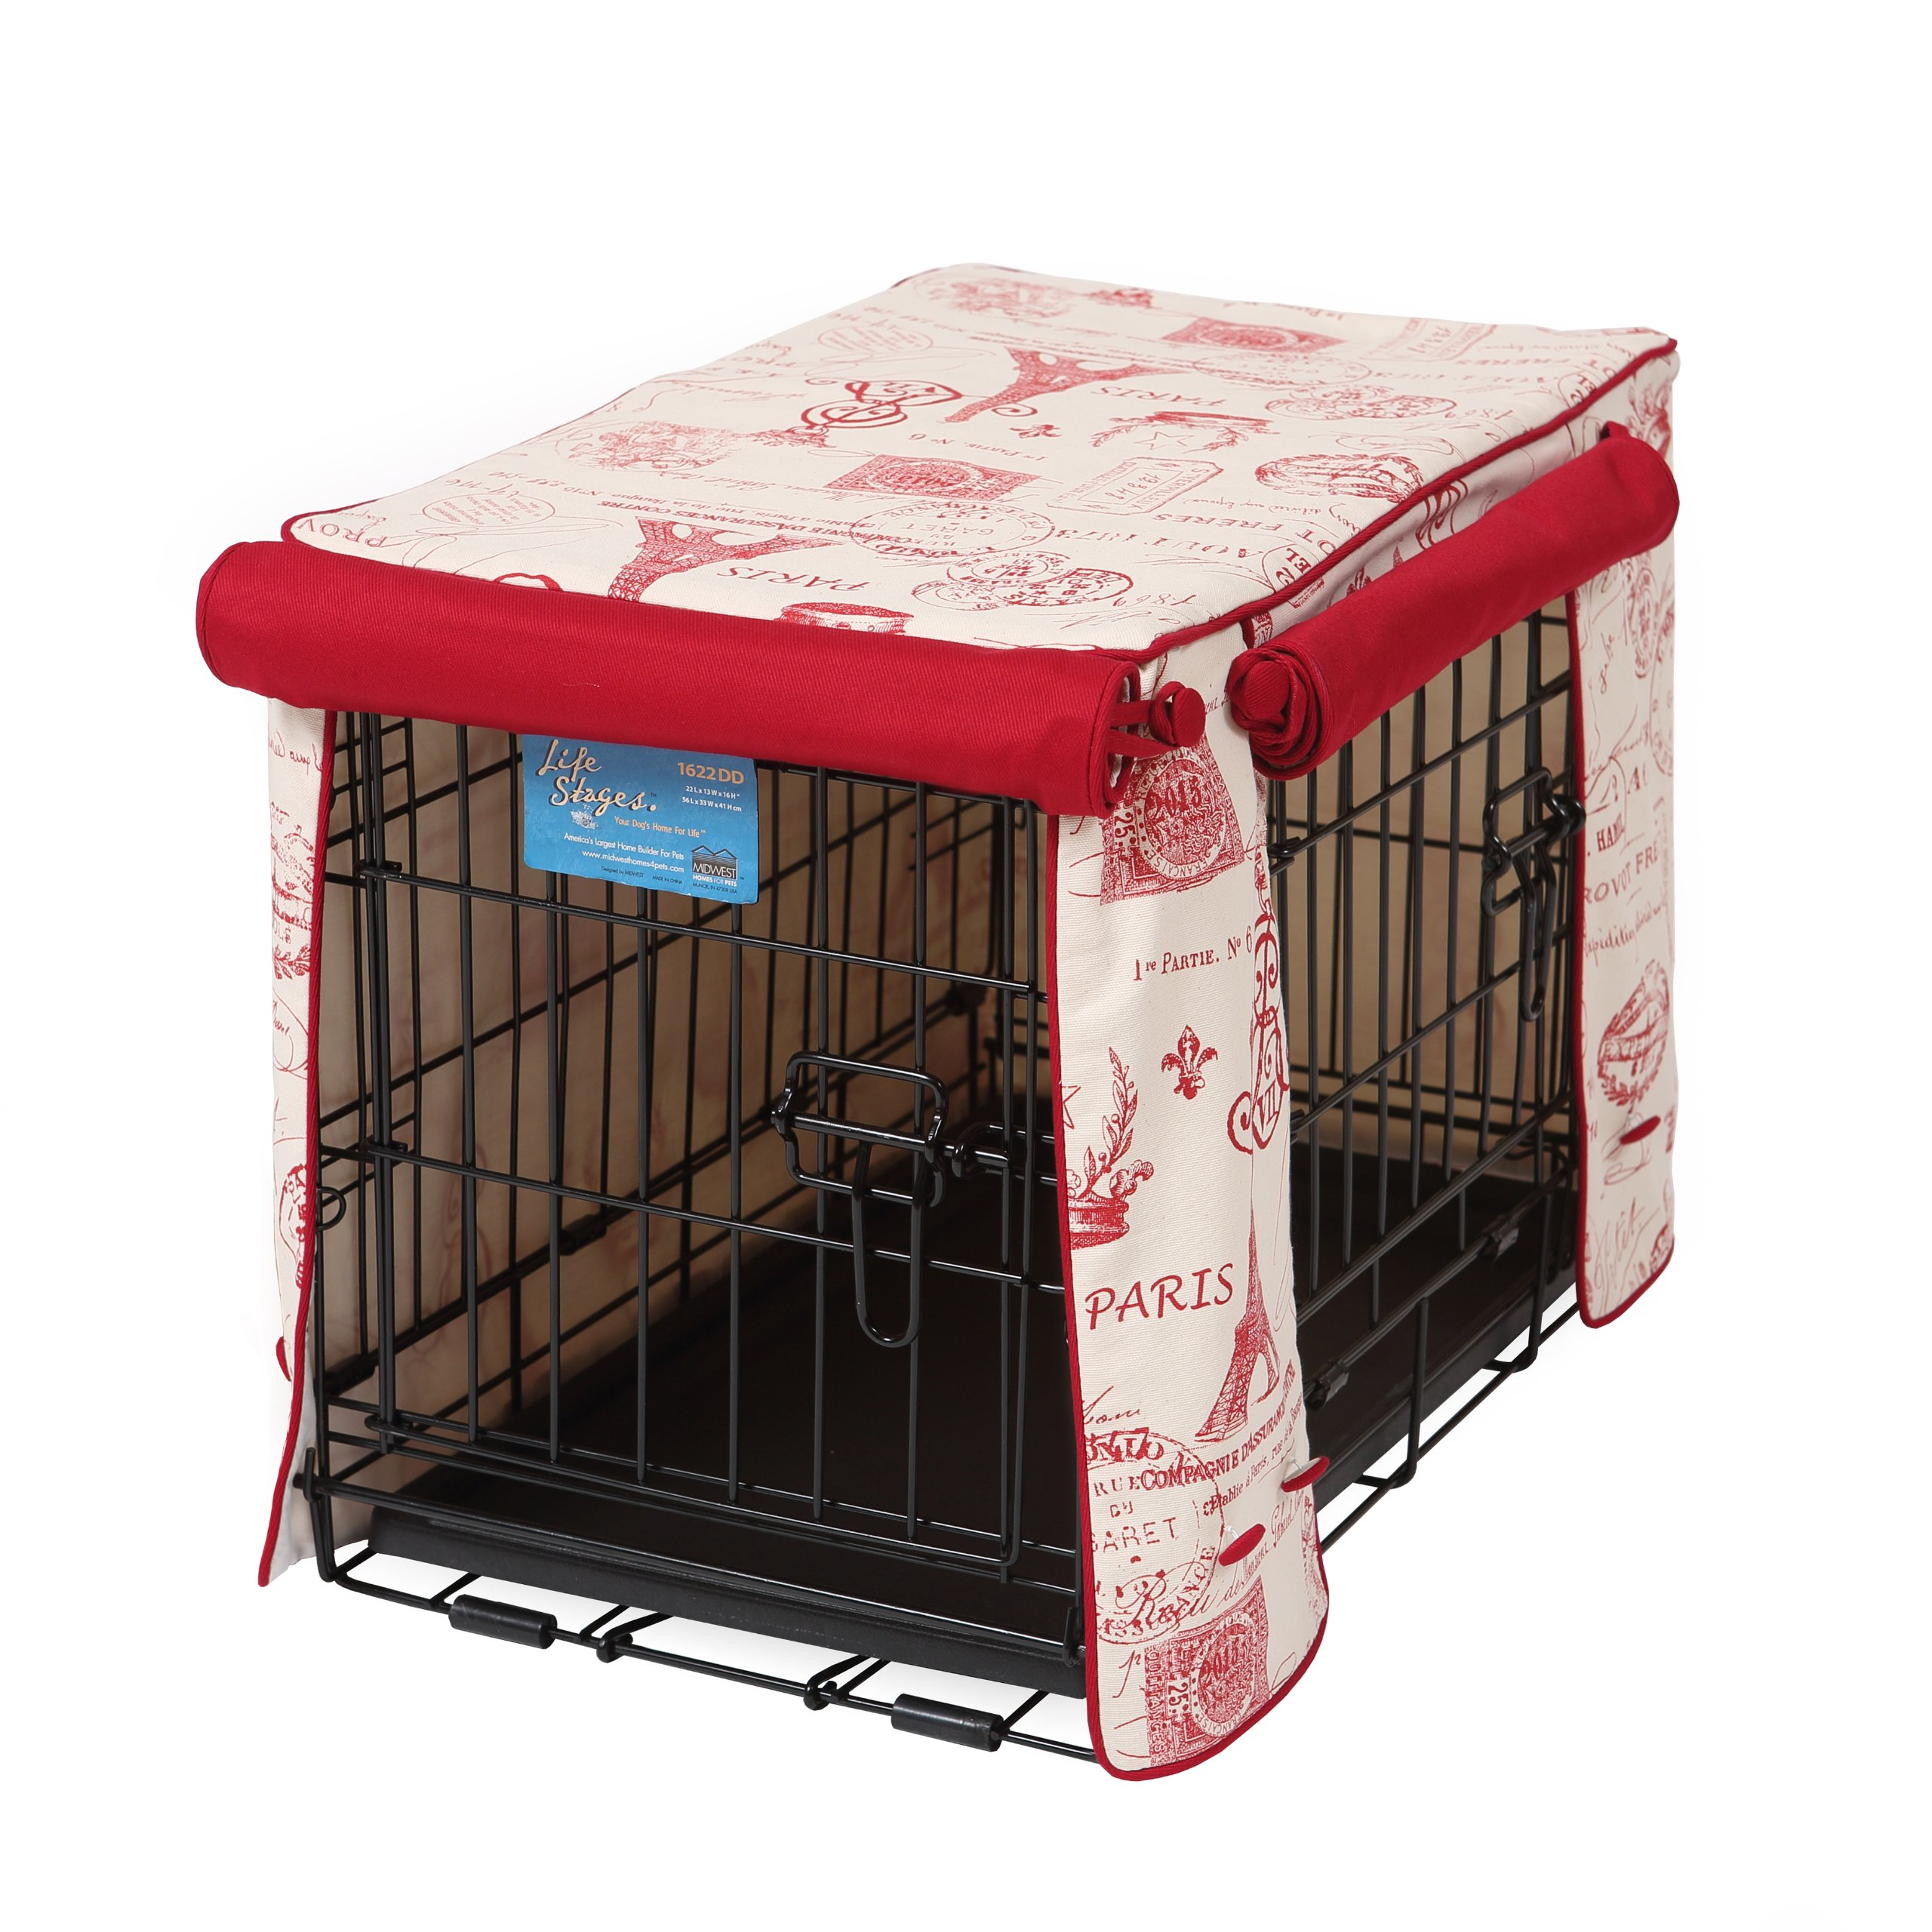 Crate Covers and More Double Door 48 Pet Crate Cover, Parisian Red with Simply Red Twill